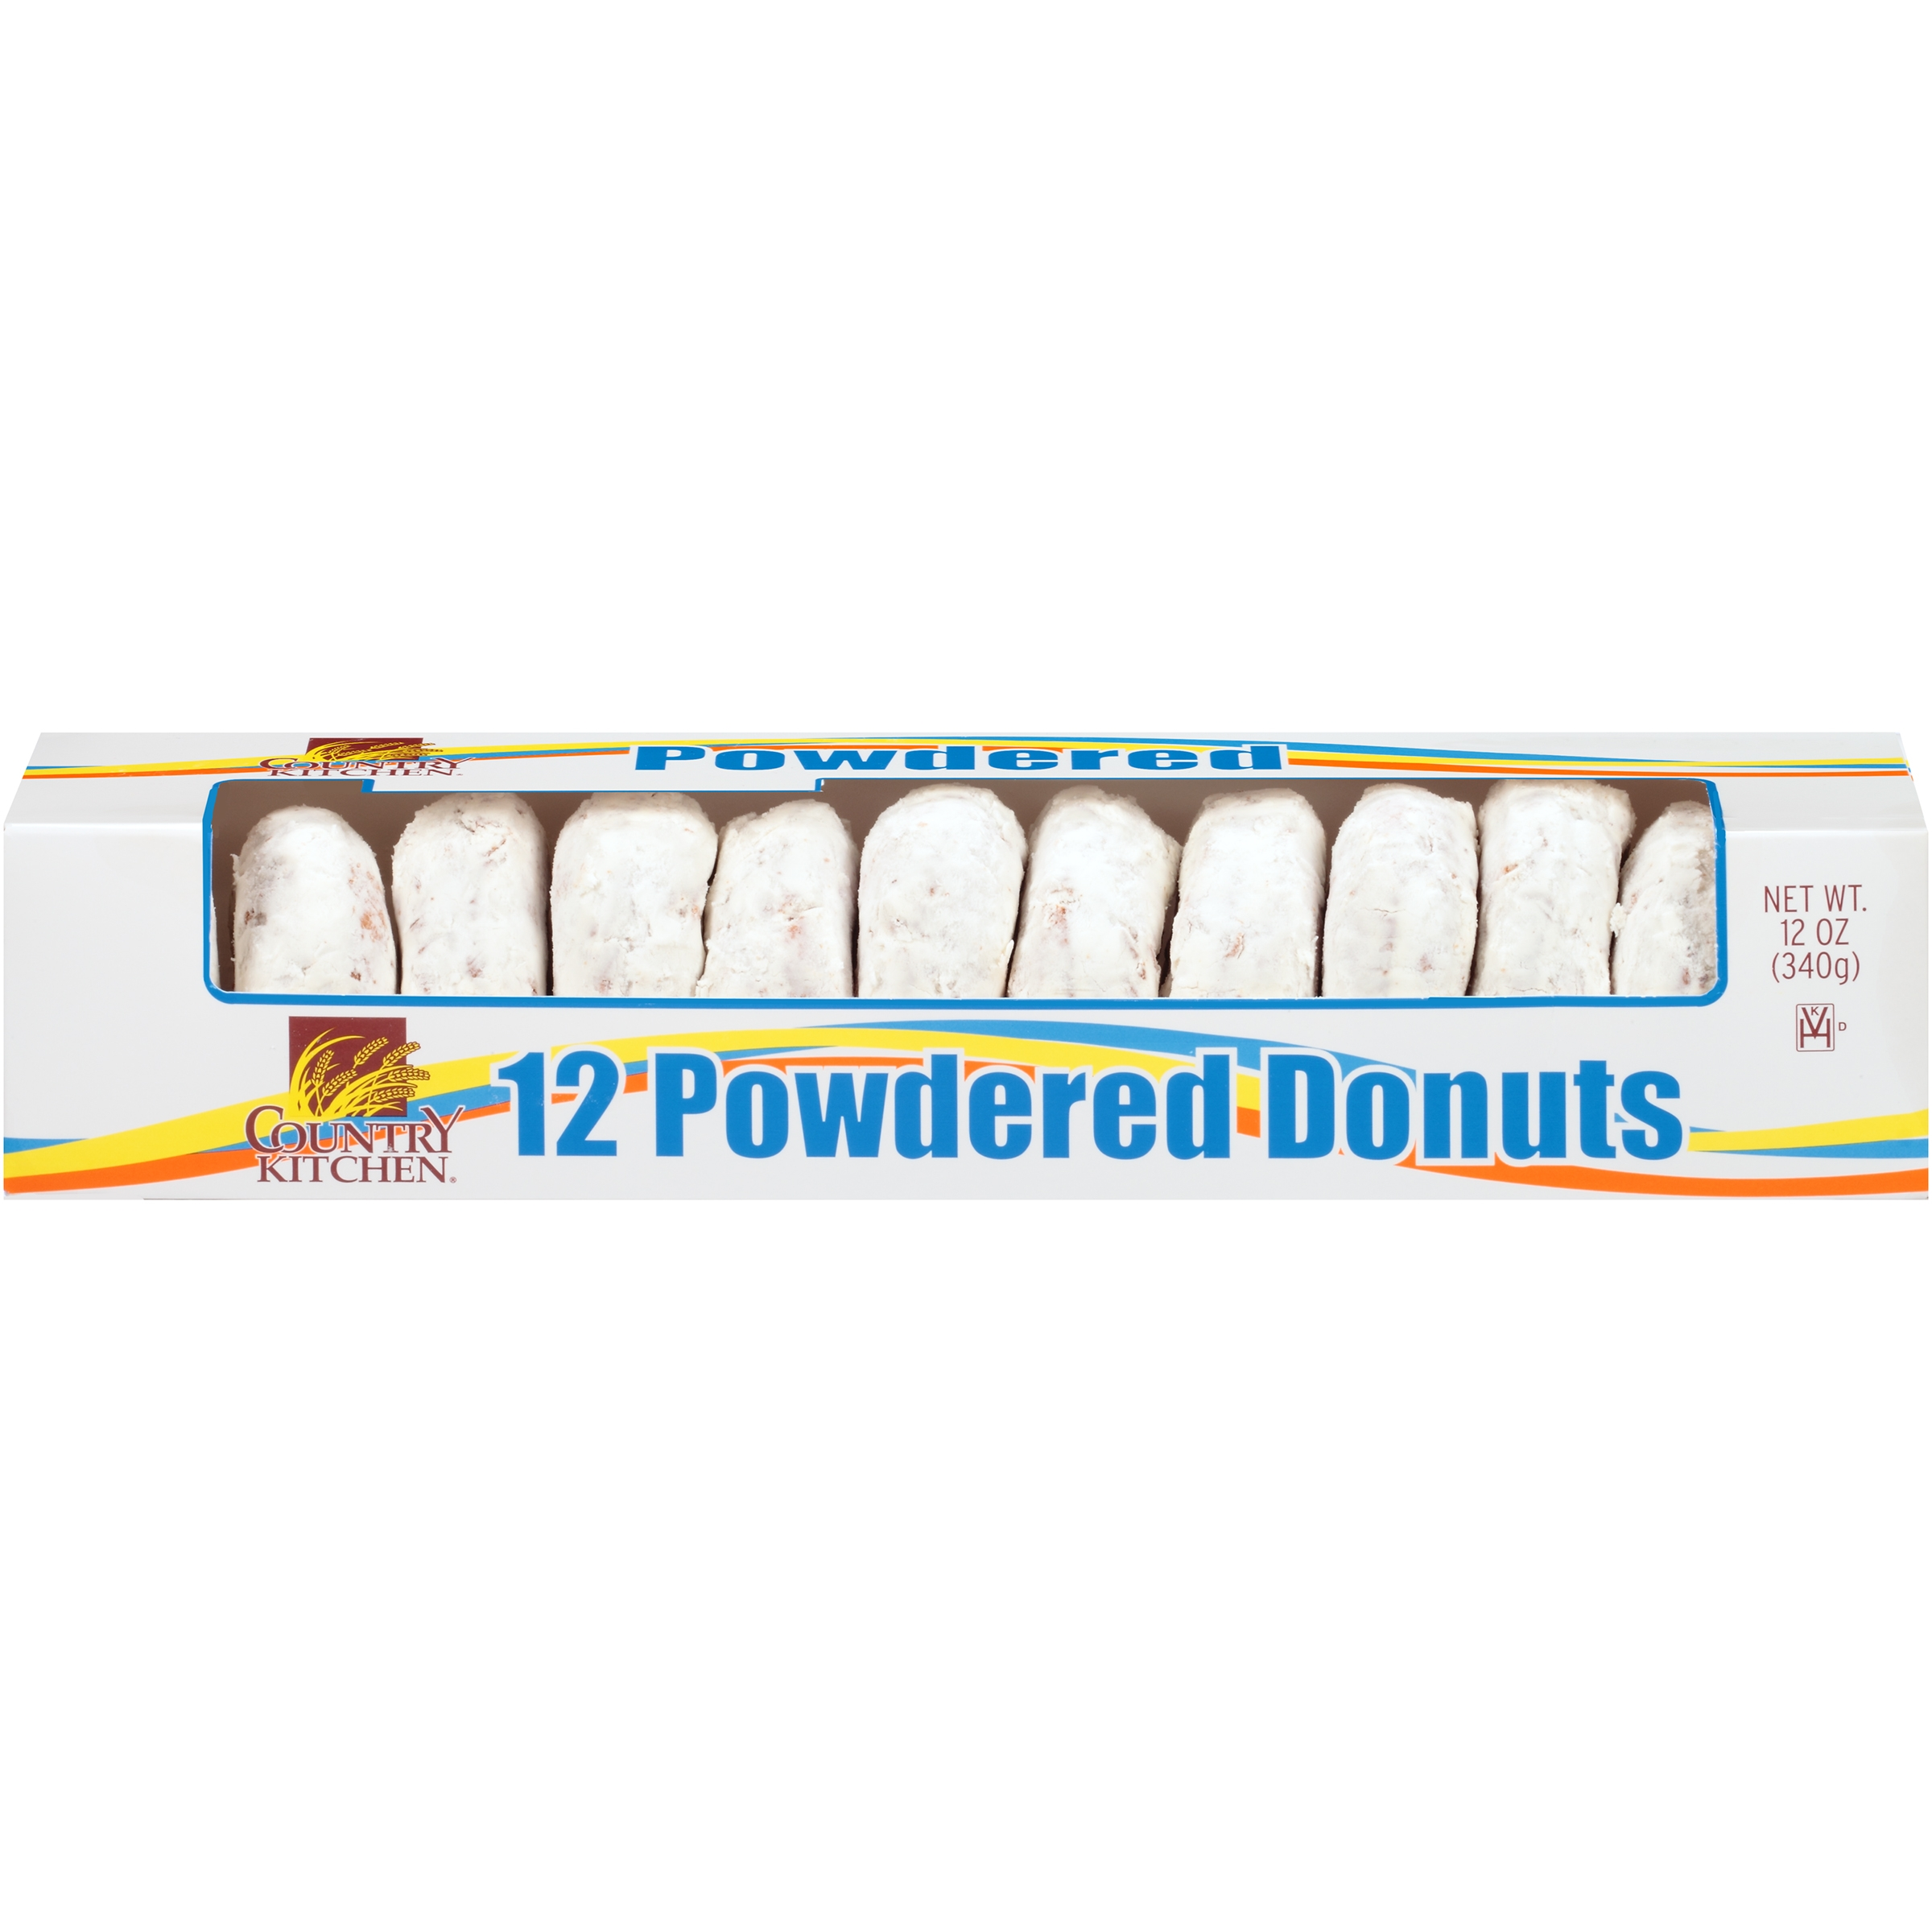 country kitchen powdered donuts 12 ct box walmart com 1969 honda 90 wiring diagram donut ct wiring diagram [ 2400 x 2400 Pixel ]